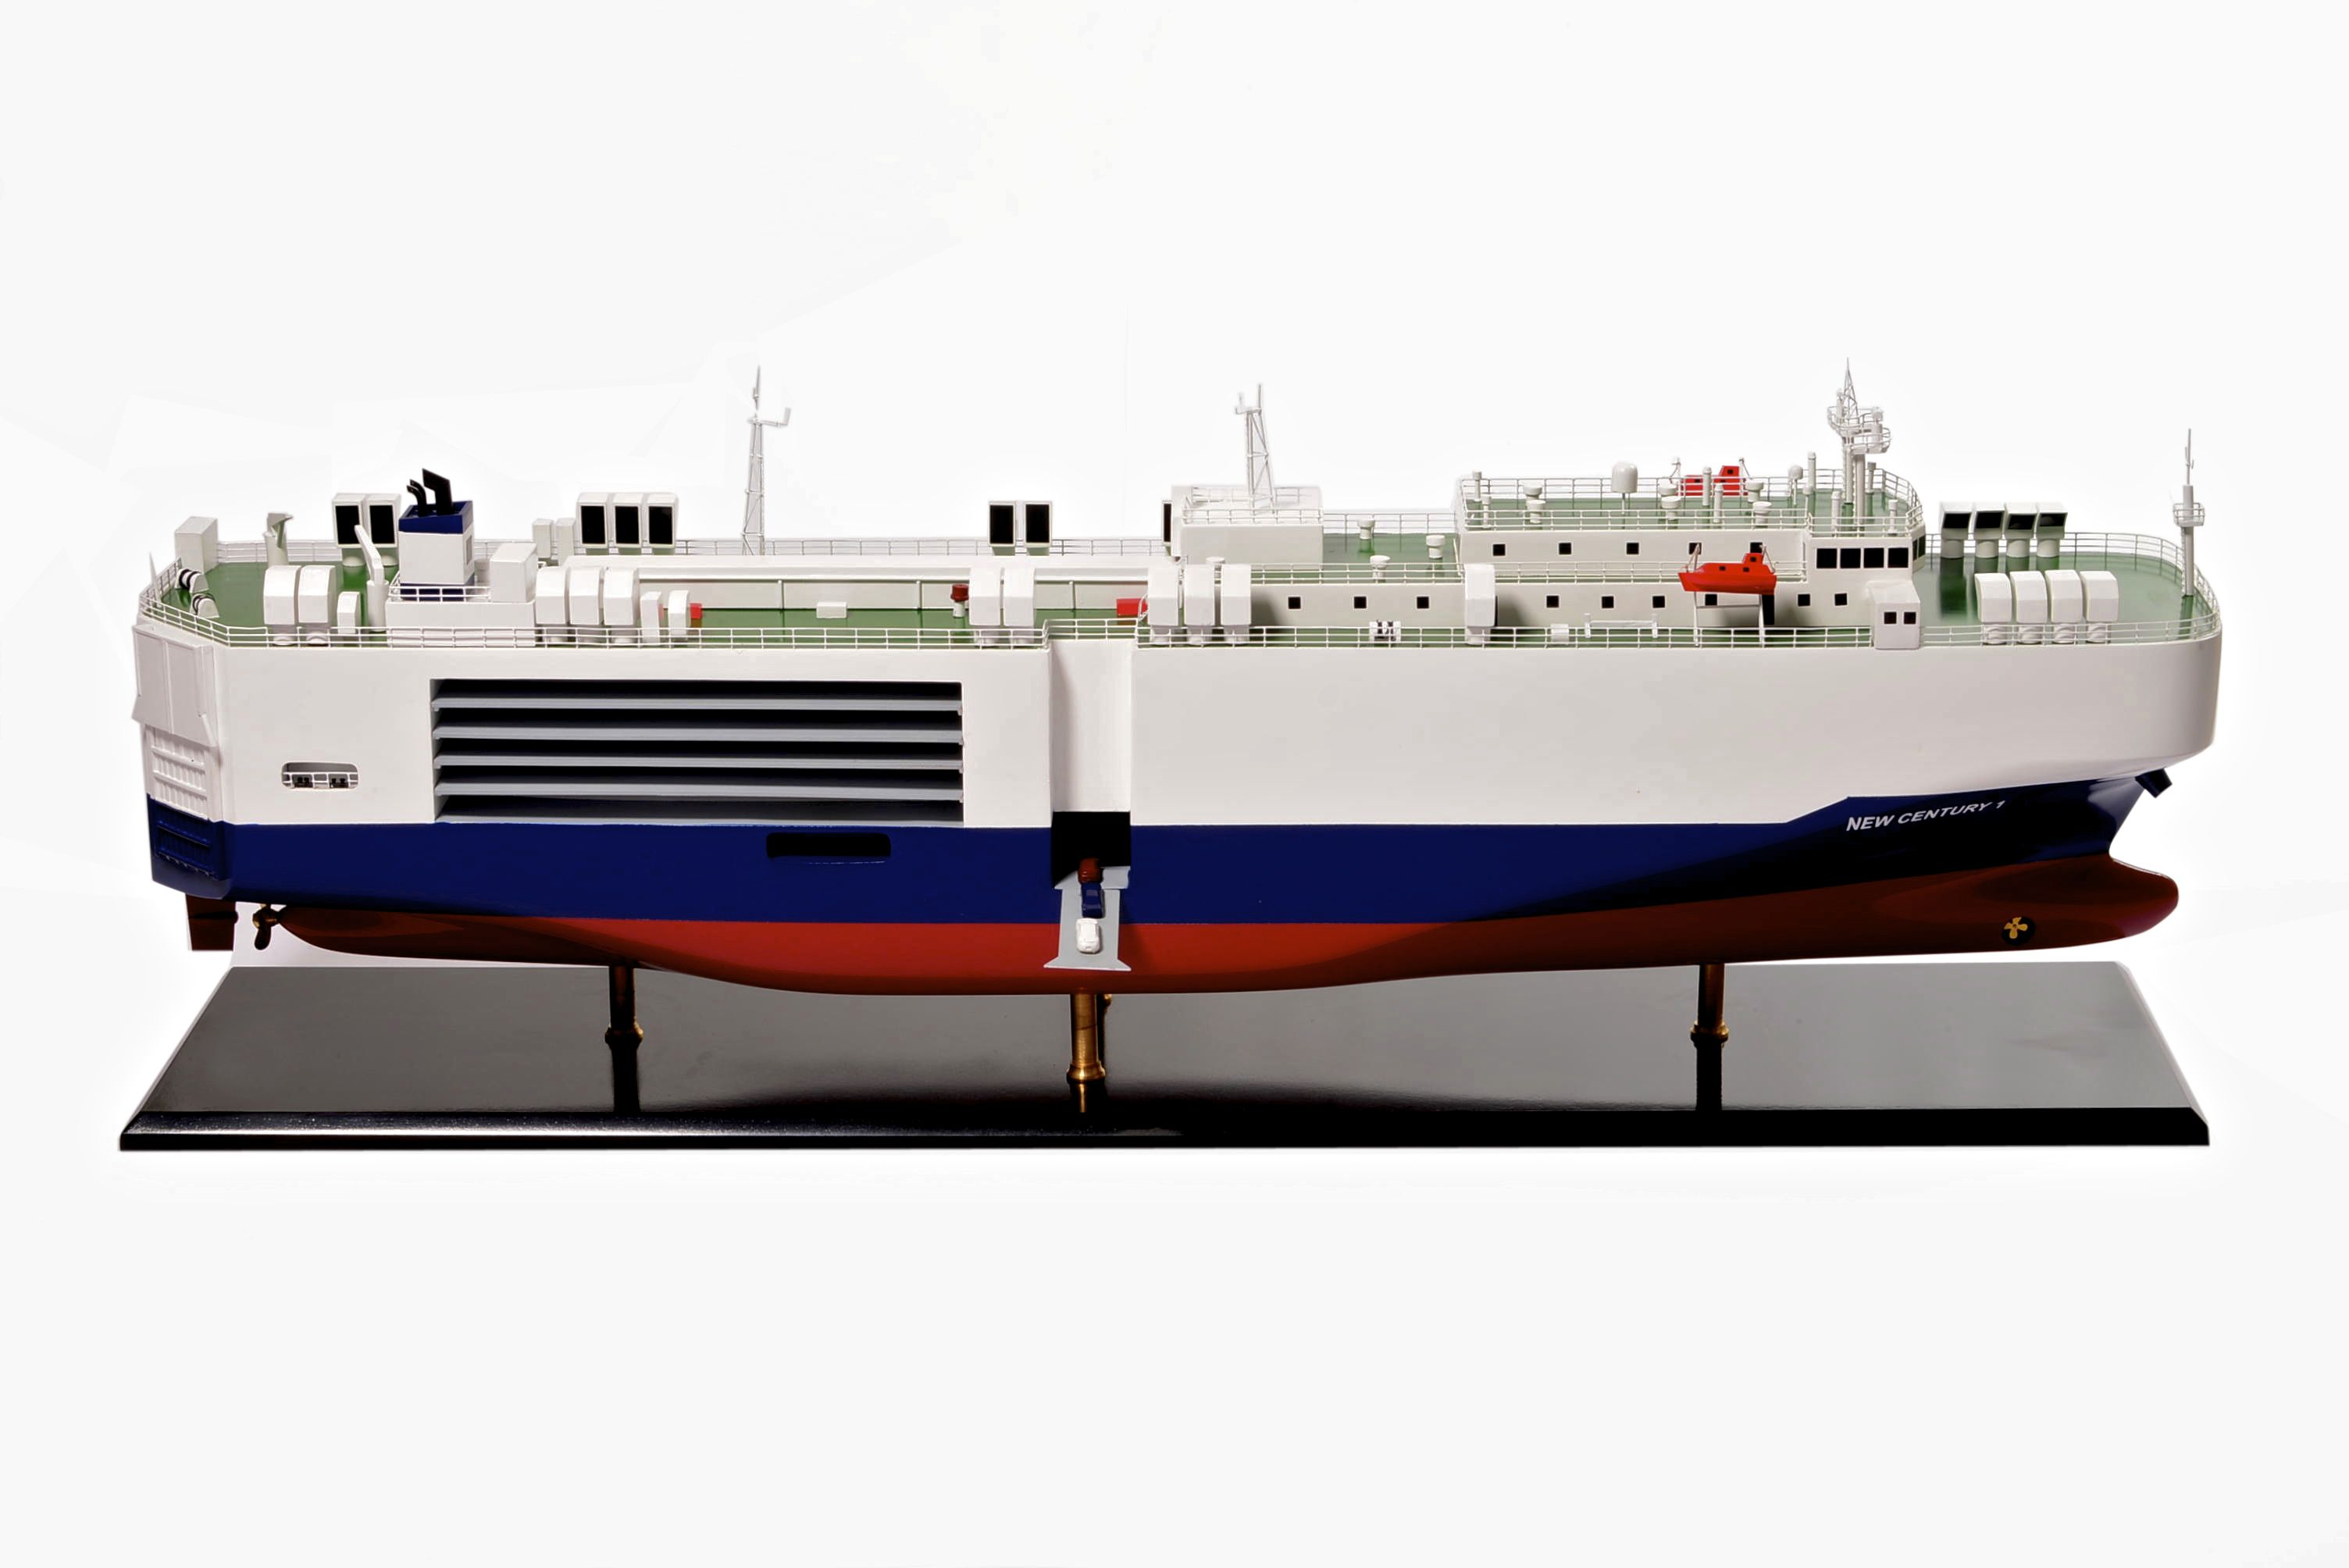 1834-10912-New-Century-1-Vehicle-Carrier-Model-Ship